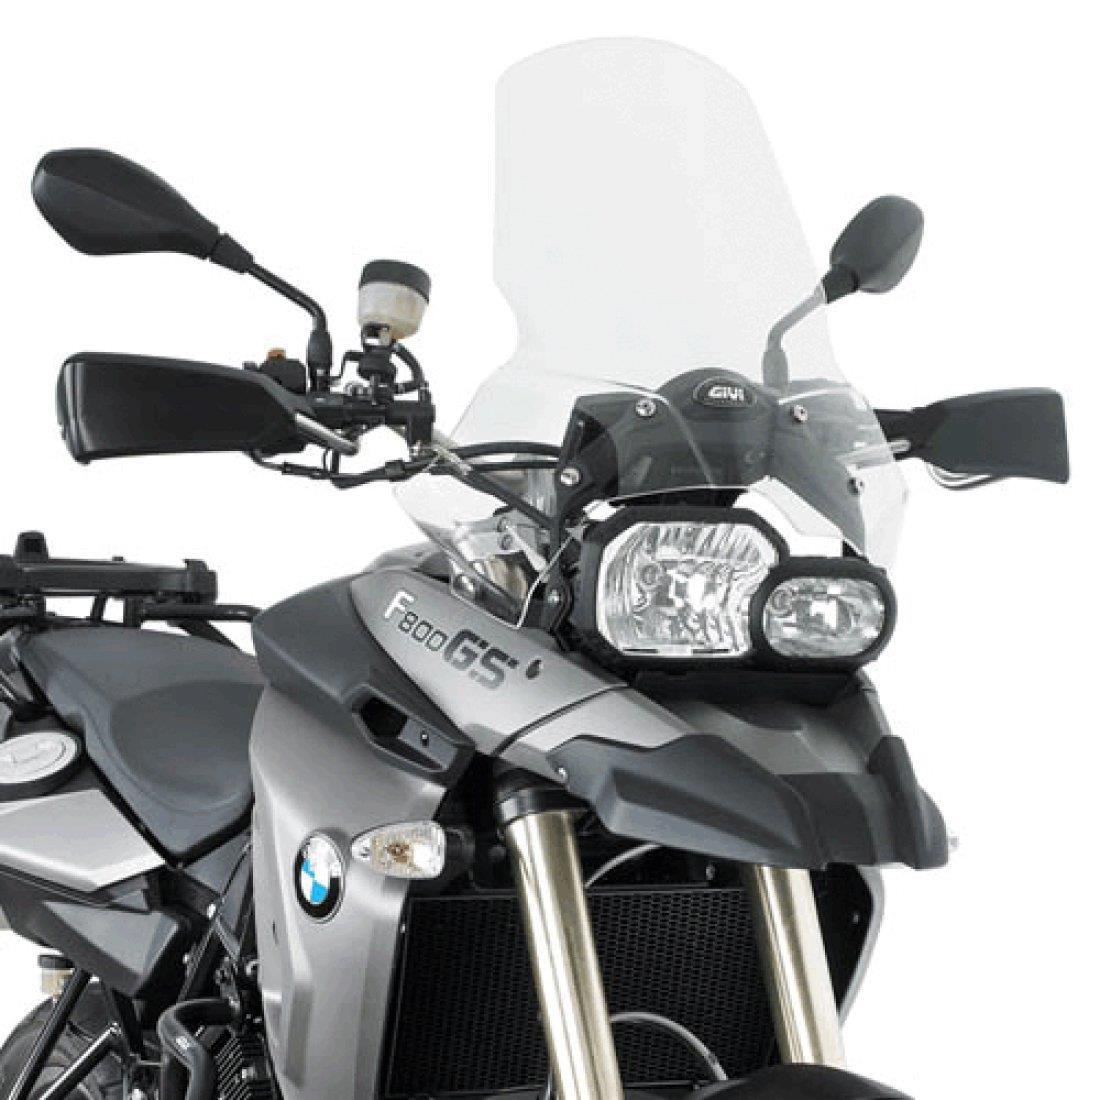 Givi 333DT Windscreen To Suit BMW F650GS / F800GS Online